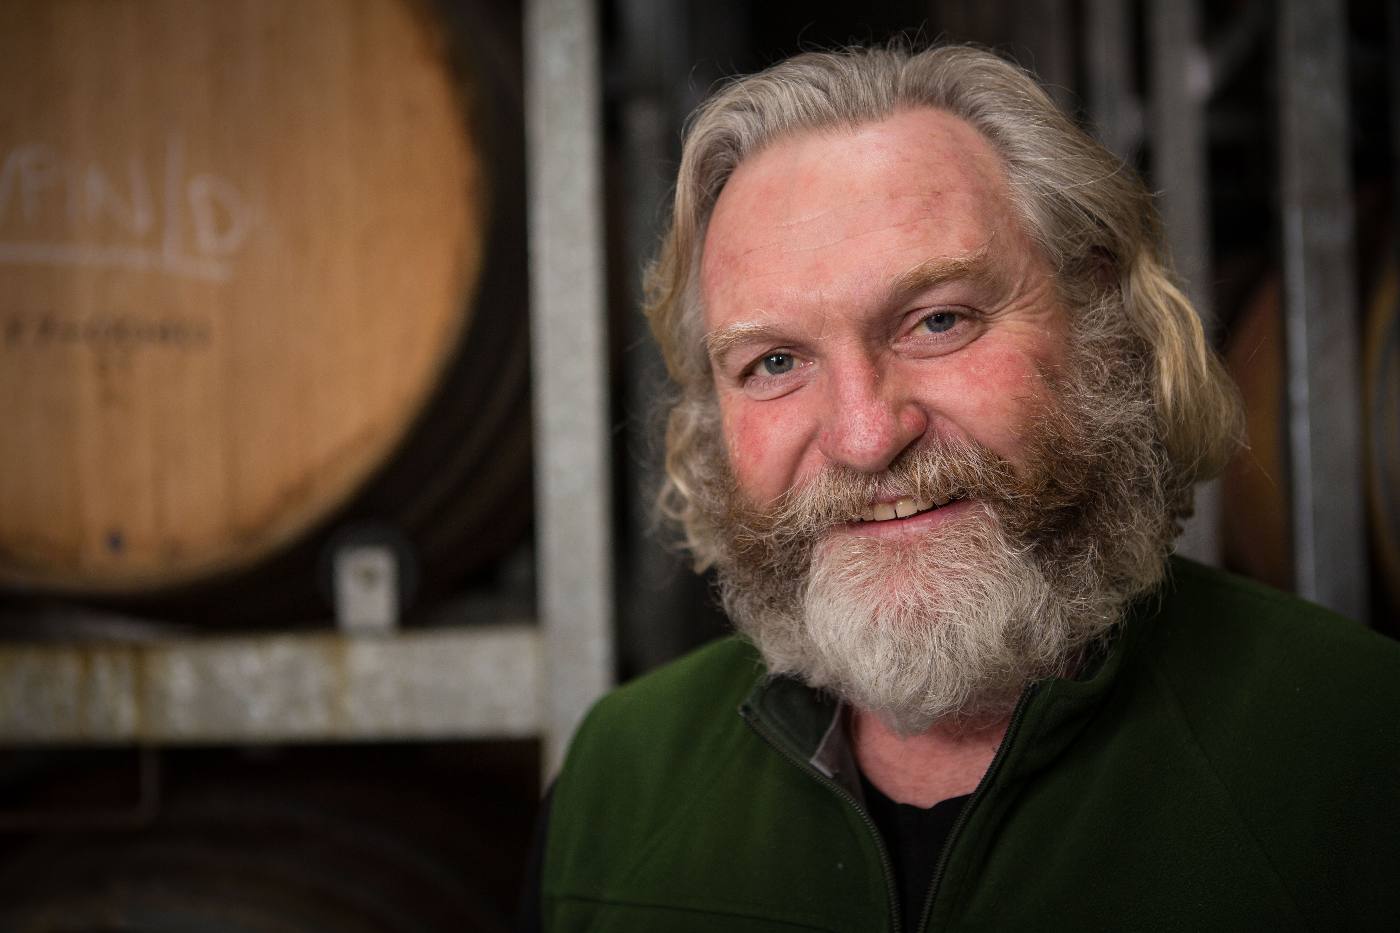 Oakridge Chief Winemaker David Bicknell